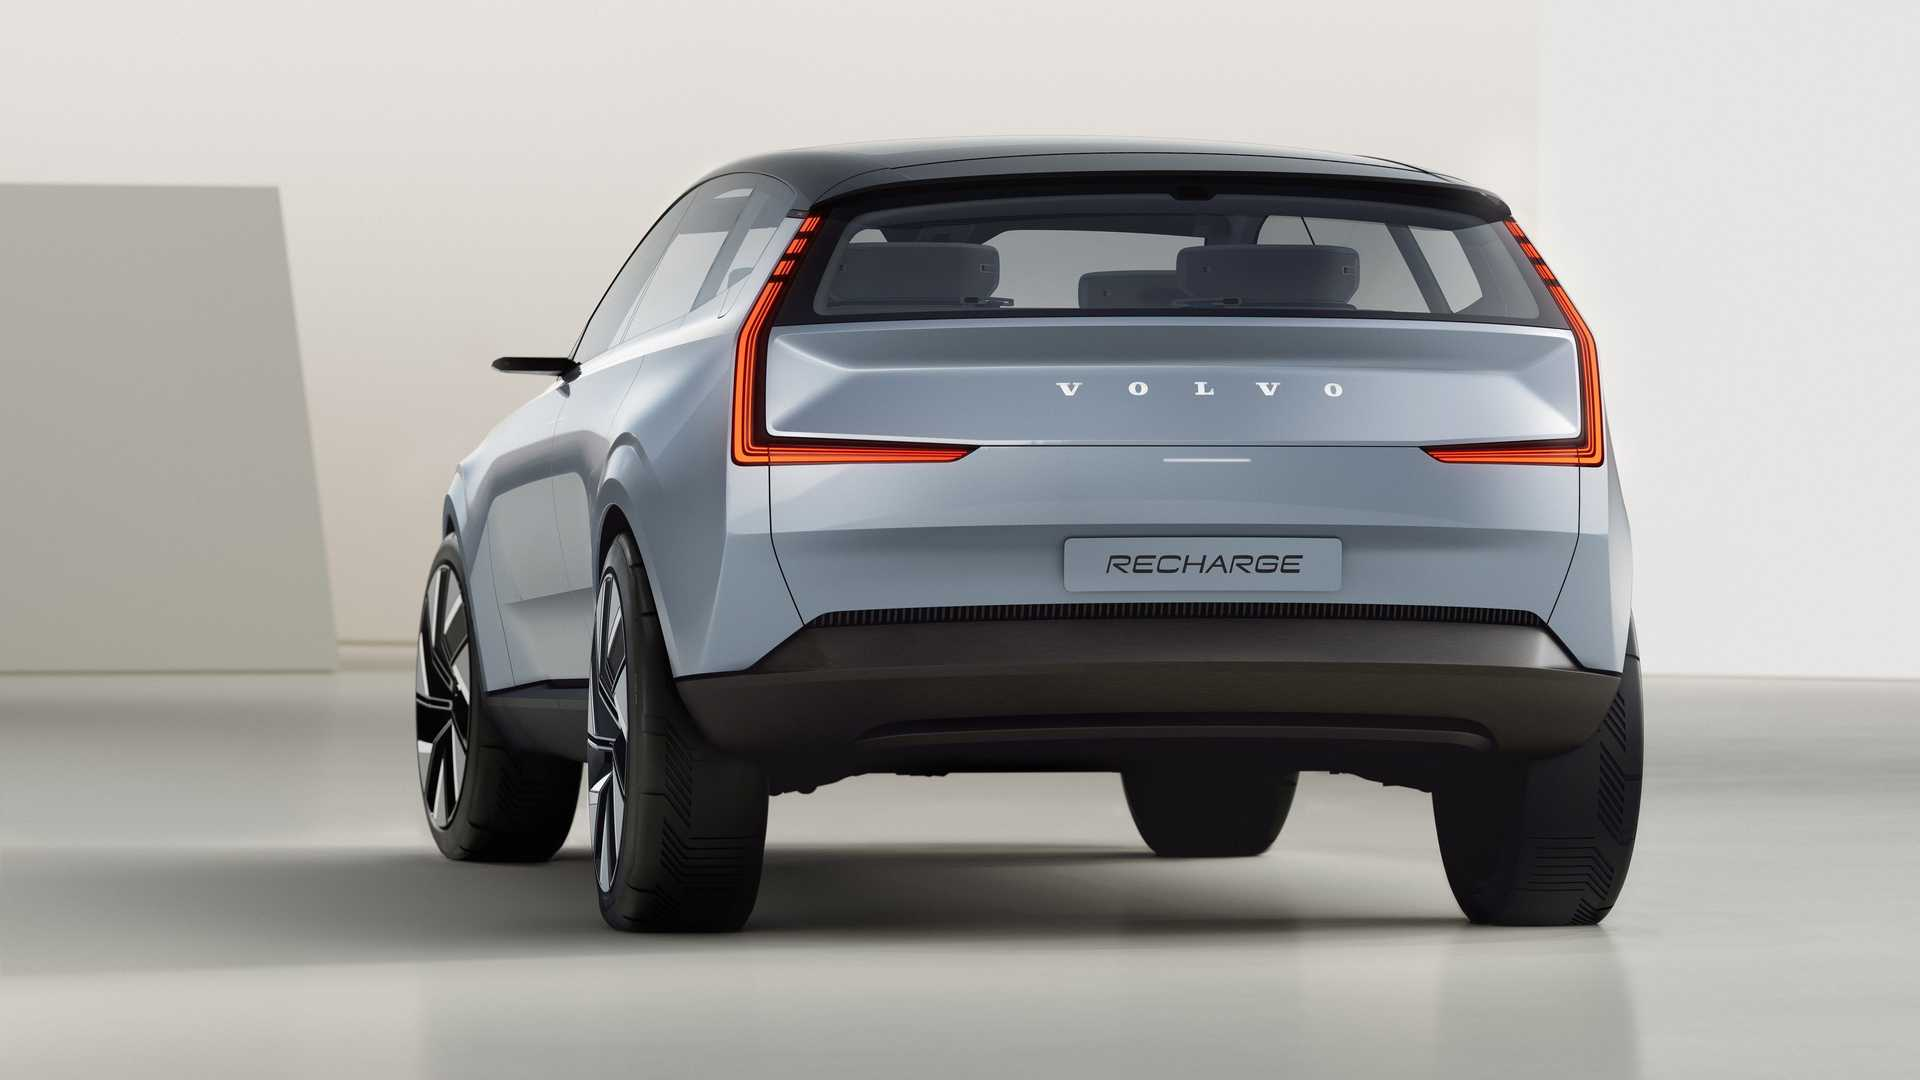 volvo-concept-recharge-rear-view.jpeg